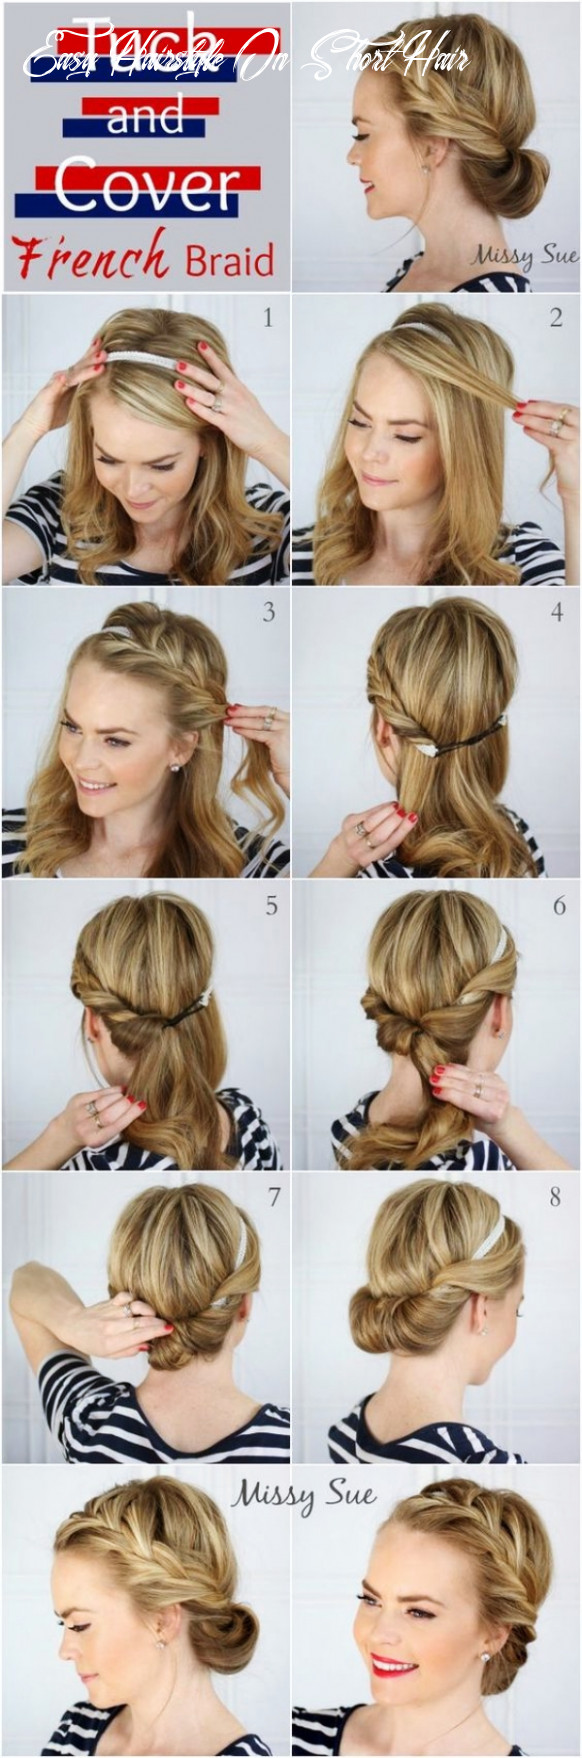 10 Easy Hairstyles (No Haircuts) for Women with Short Hair - How ...